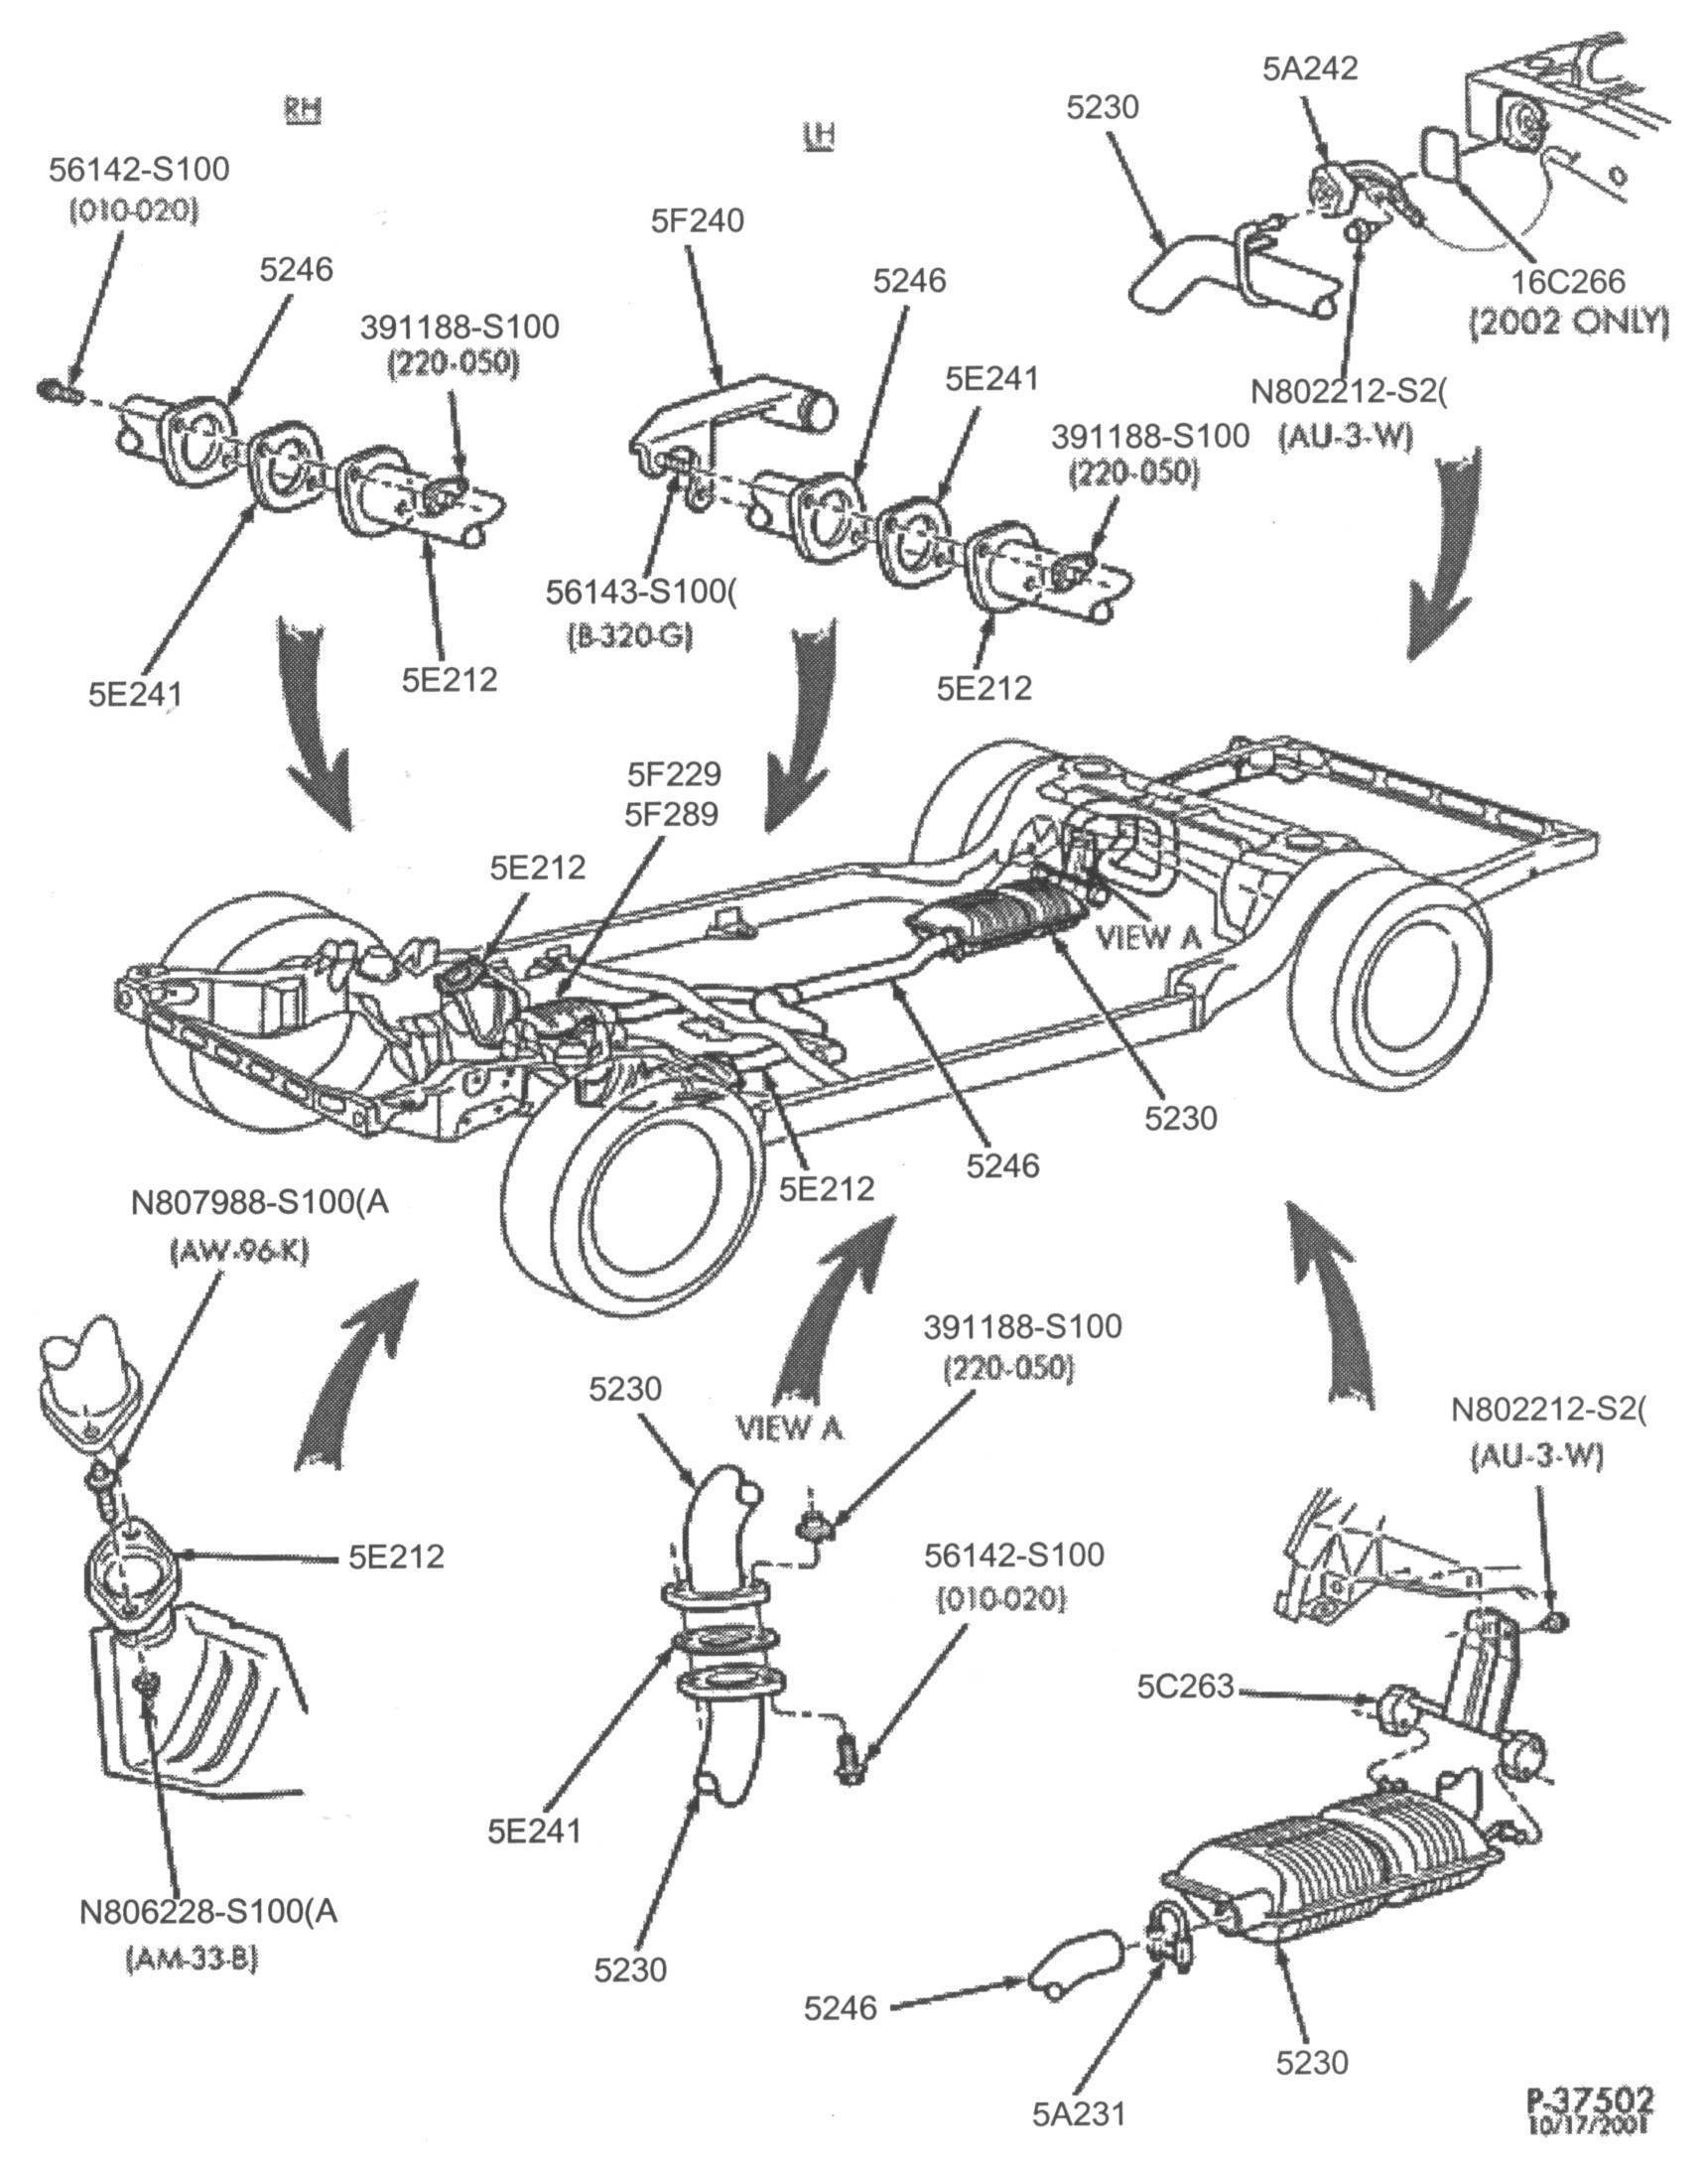 Diagram Of Exhaust System Of Car ford Crown Victoria Police Interceptor Exhaust Parts Of Diagram Of Exhaust System Of Car